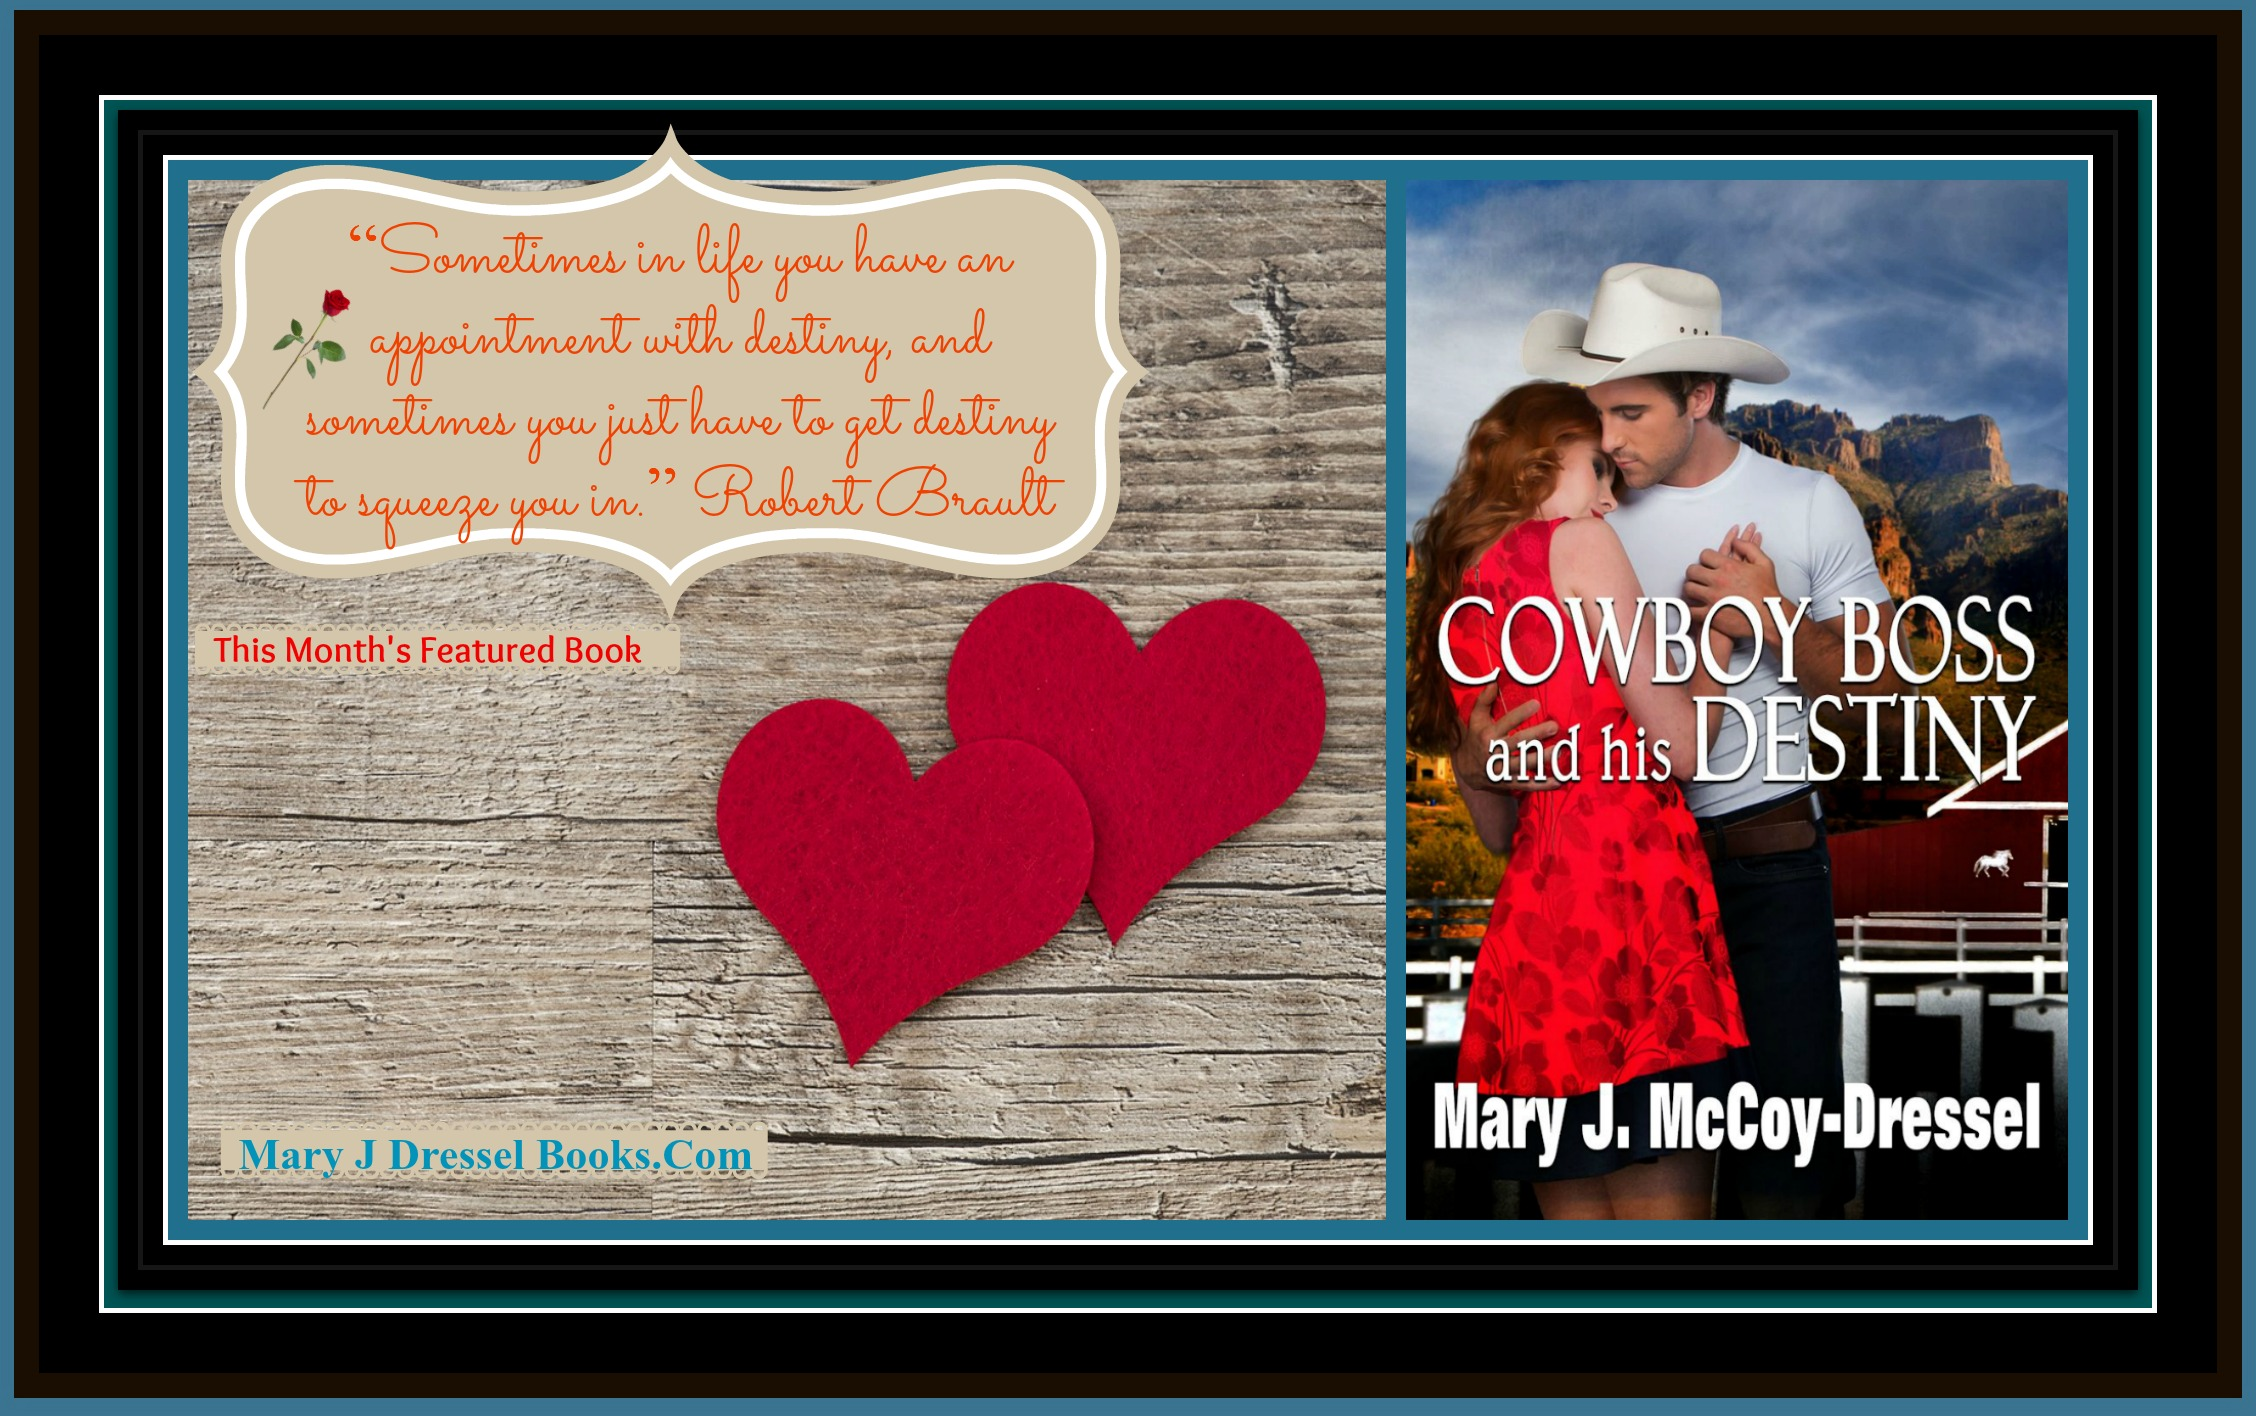 Mary J. McCoy-Dressel Books